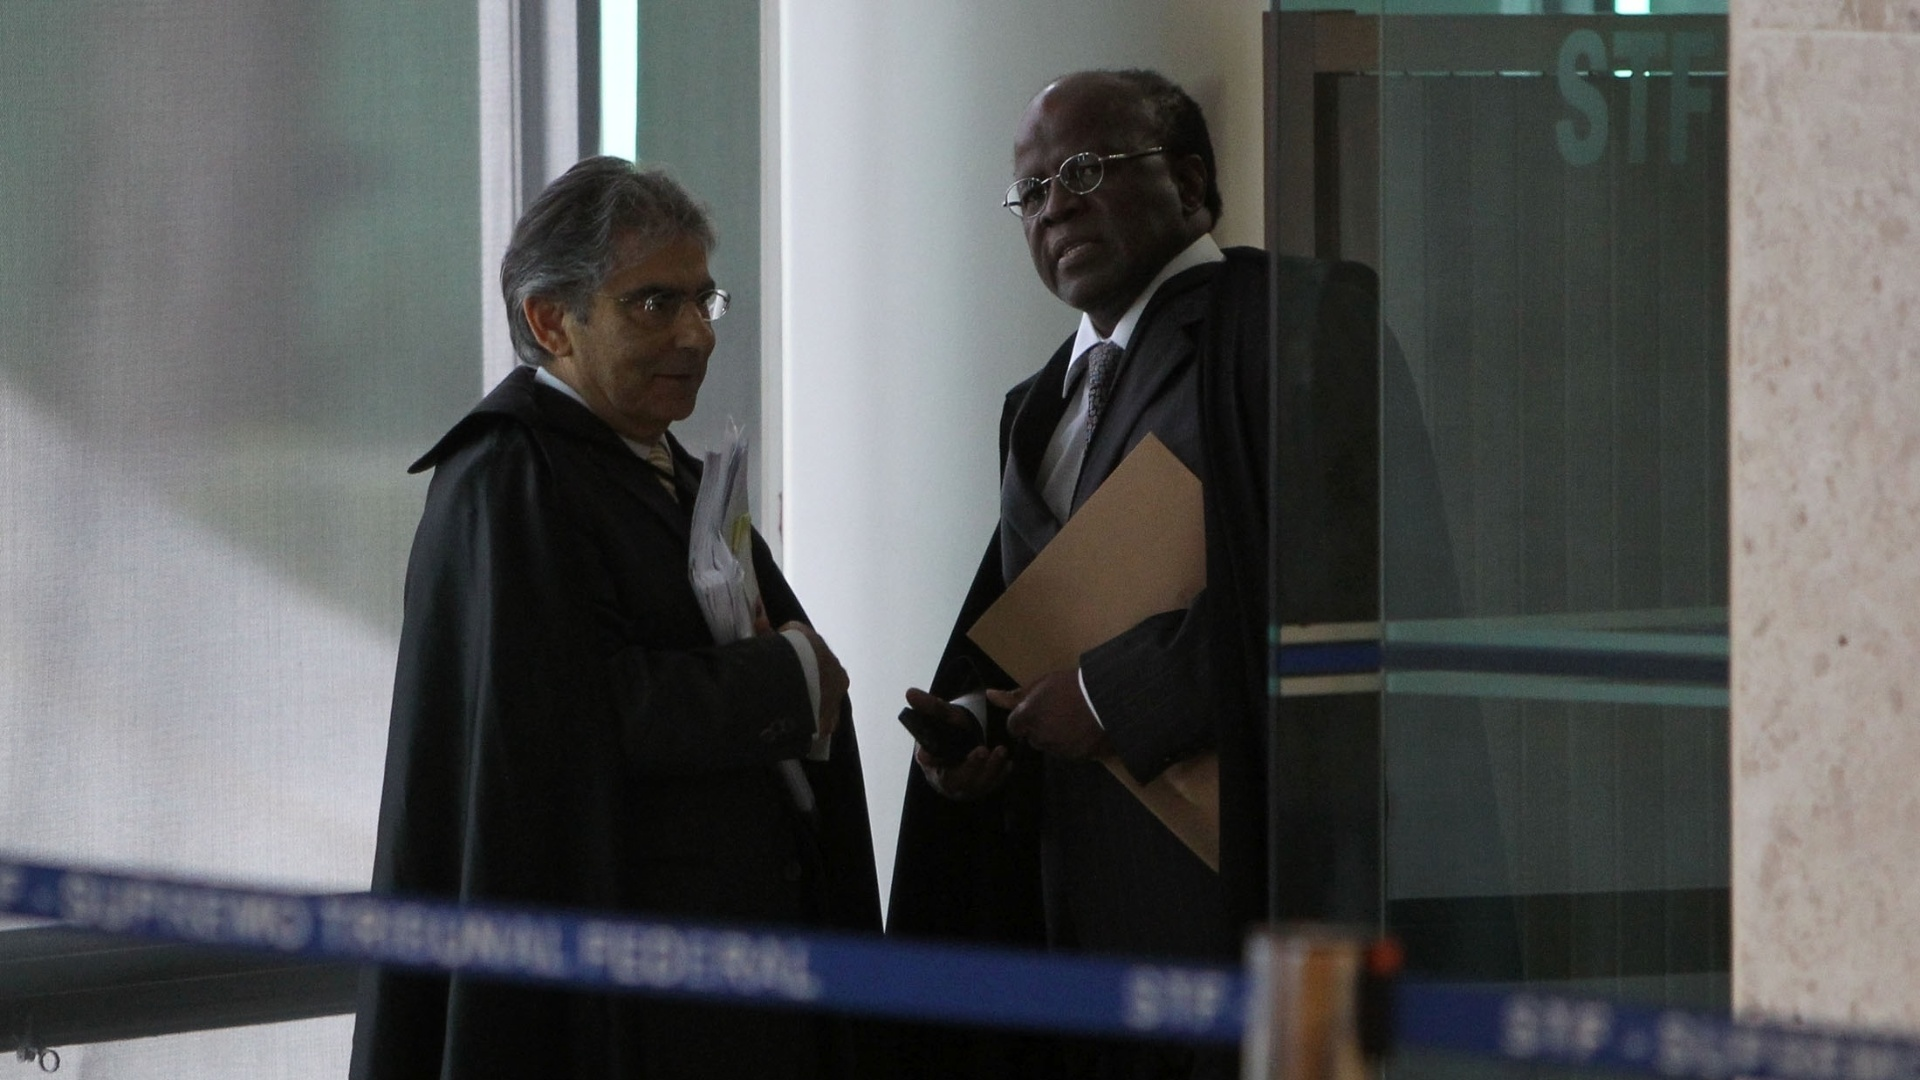 12.nov.2012 - O presidente do Supremo Tribunal Federal, o ministro Ayres Britto, e o ministro-relator do processo do mensalão, Joaquim Barbosa, aguardam para entrar no plenário para sessão do julgamento do mensalão, em Brasília.